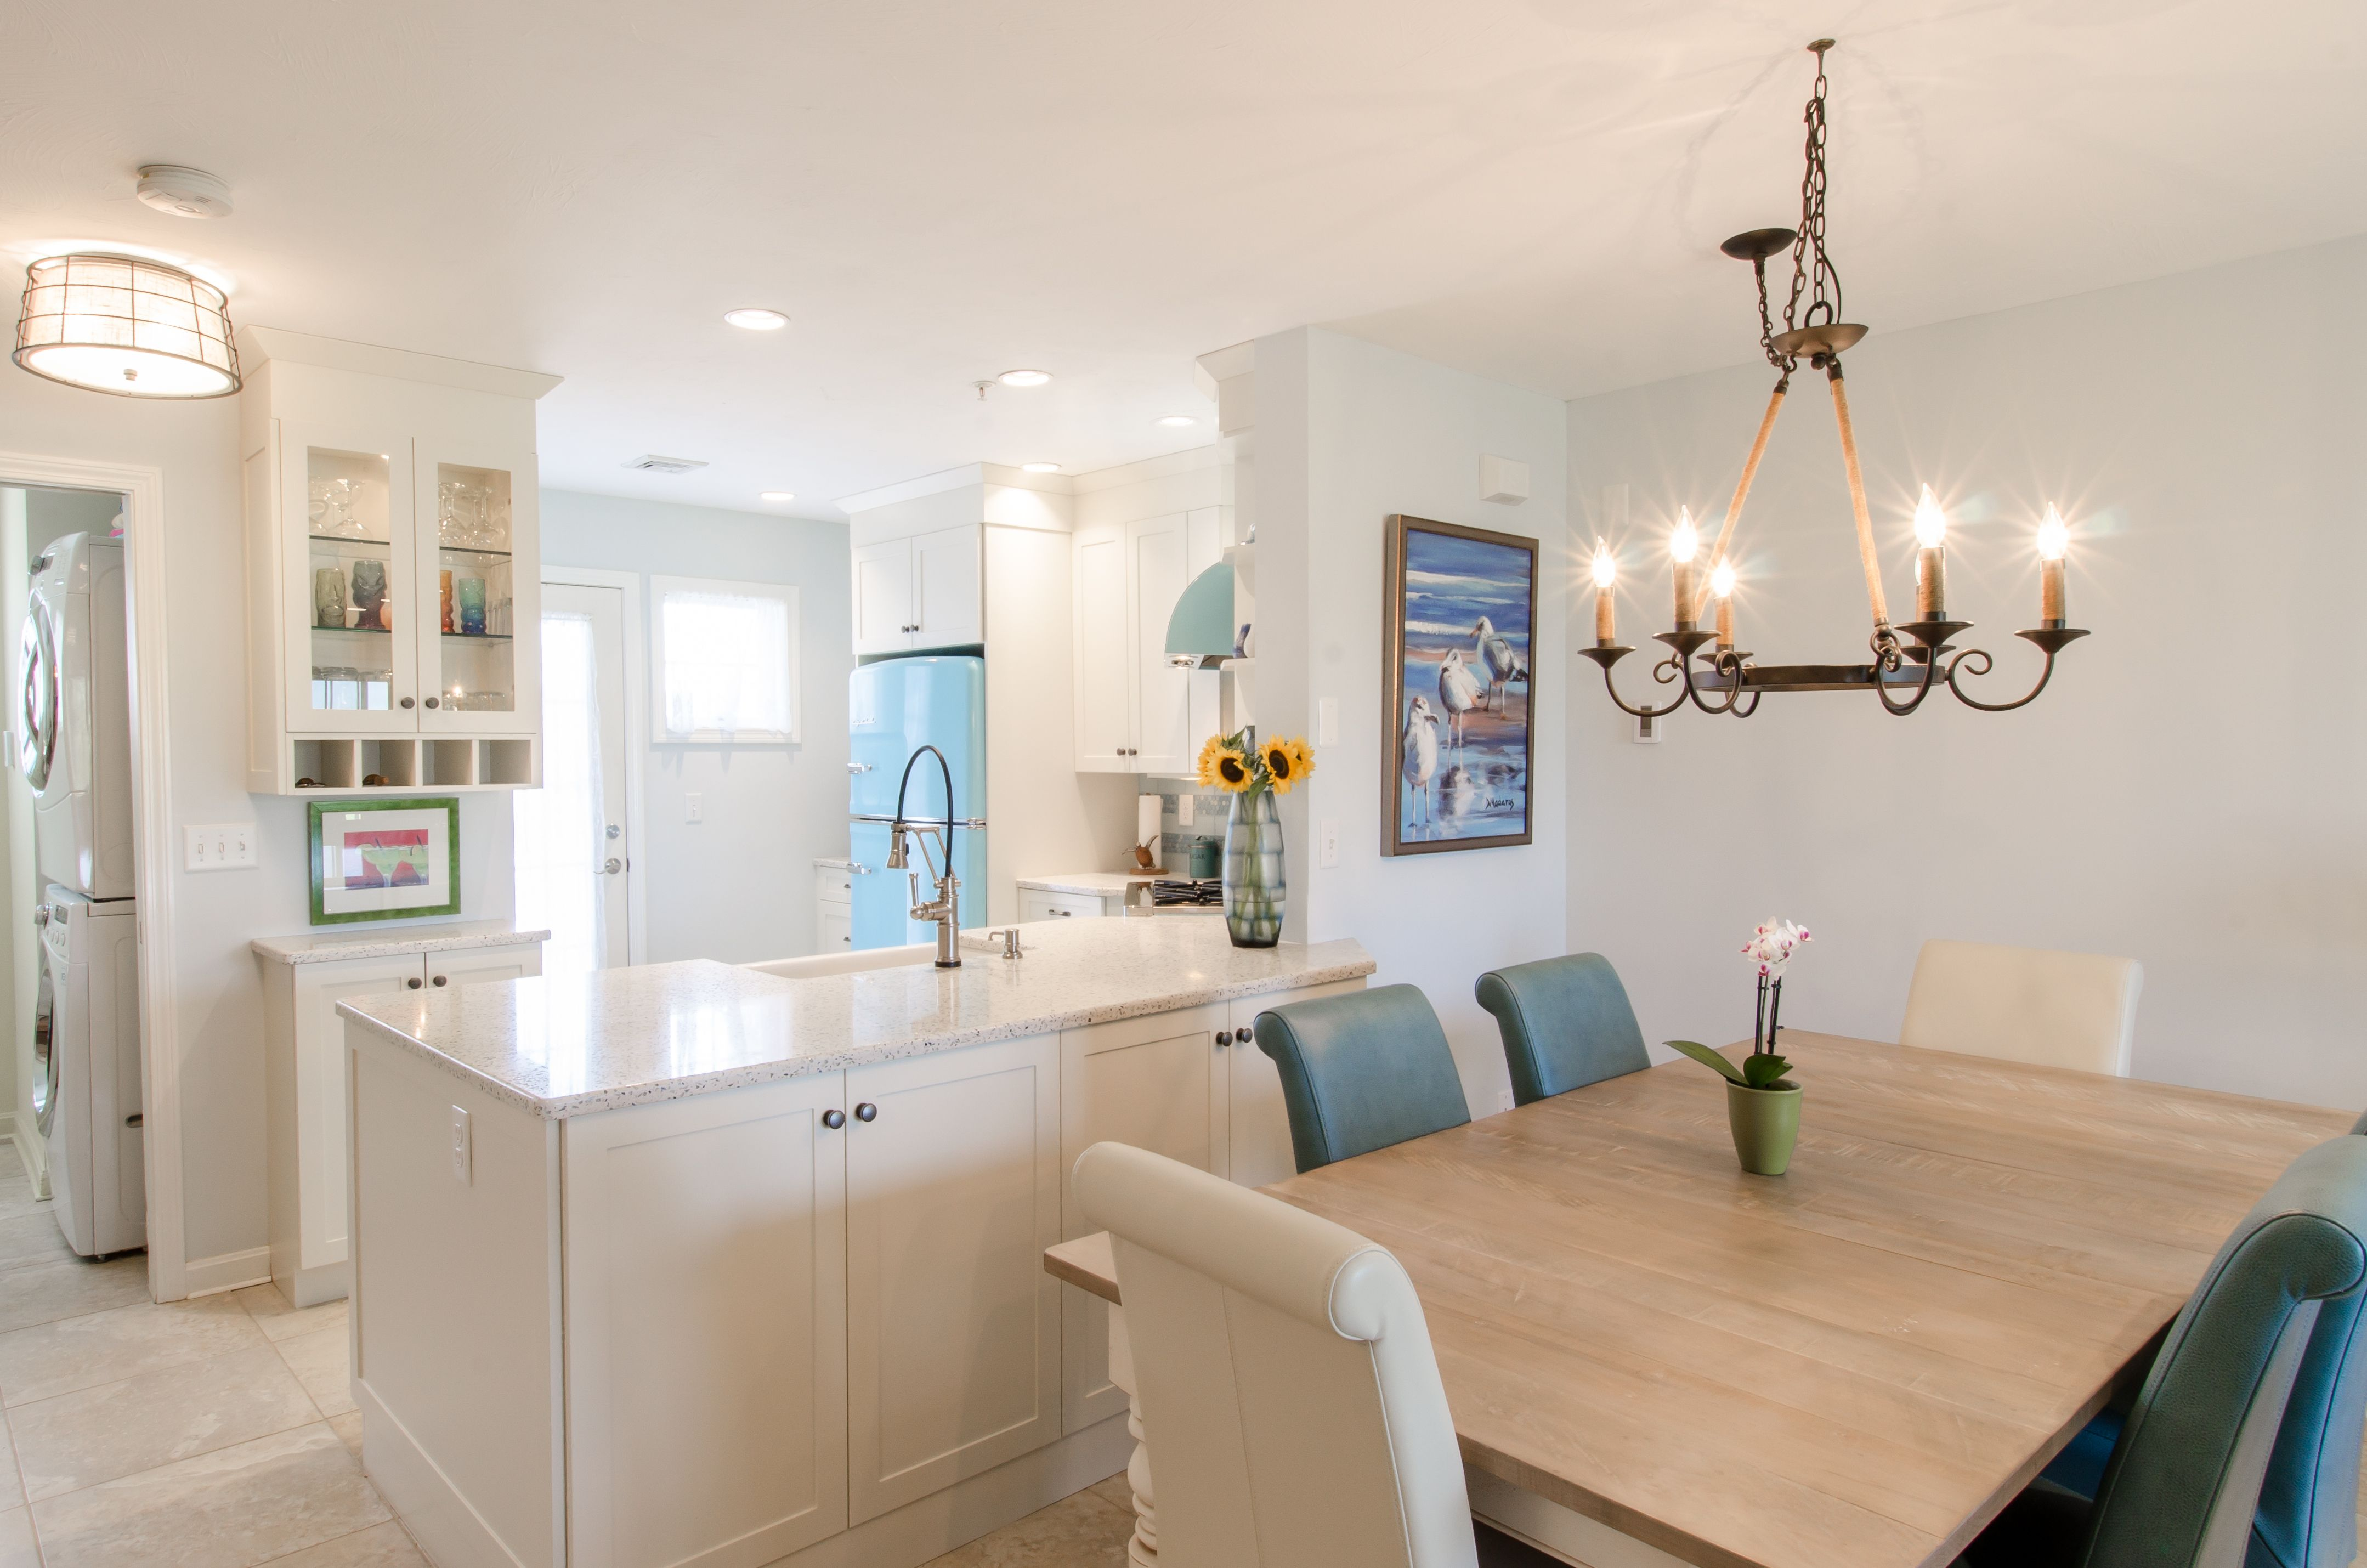 White Kitchen Cabinetry, Retro Blue Appliances, Curava Recycled Glass  Countertop, Farmers Sink